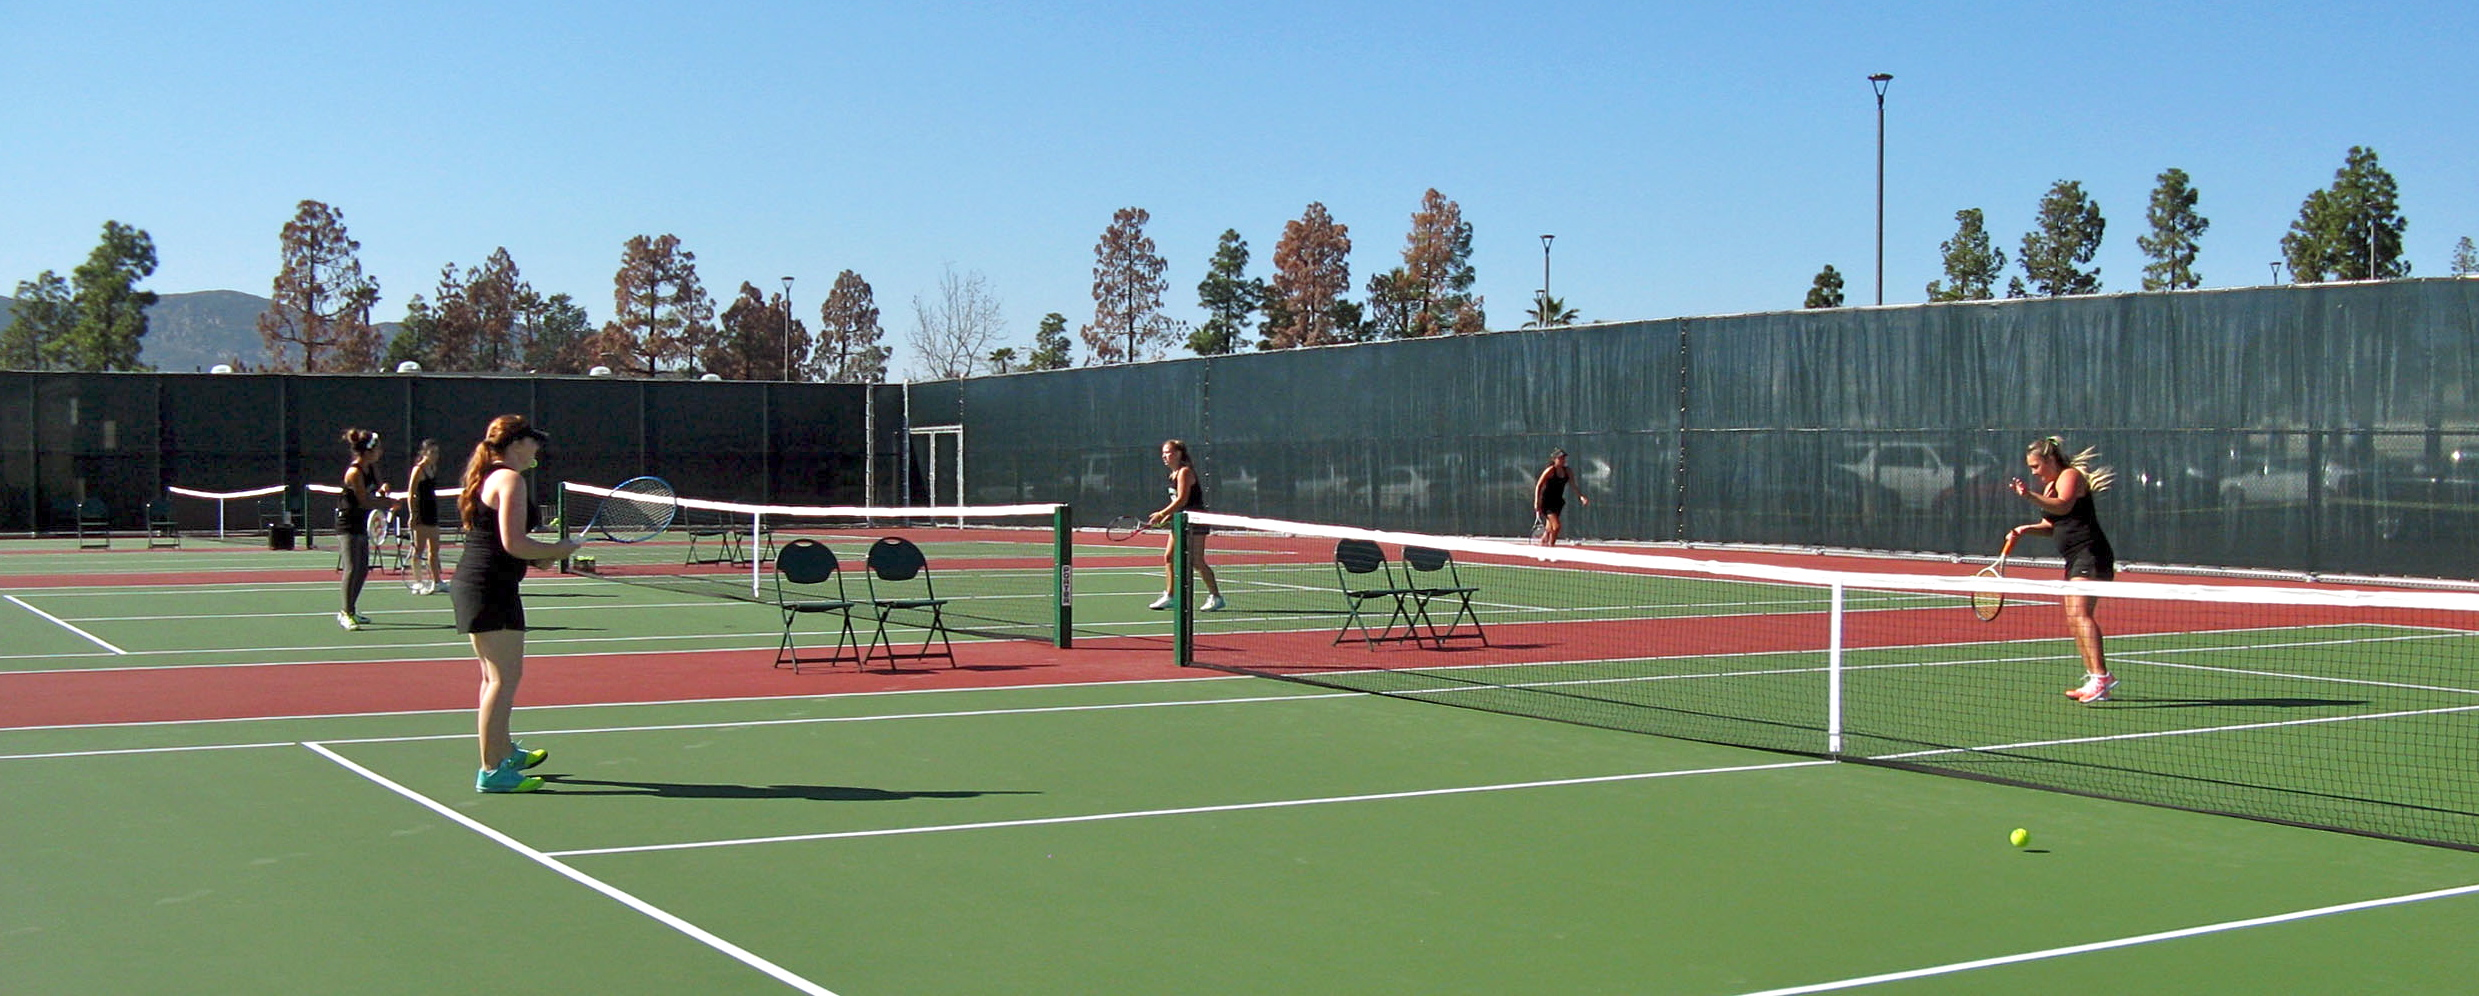 Members of the women's tennis team at Grossmont College play on the new tennis courts.